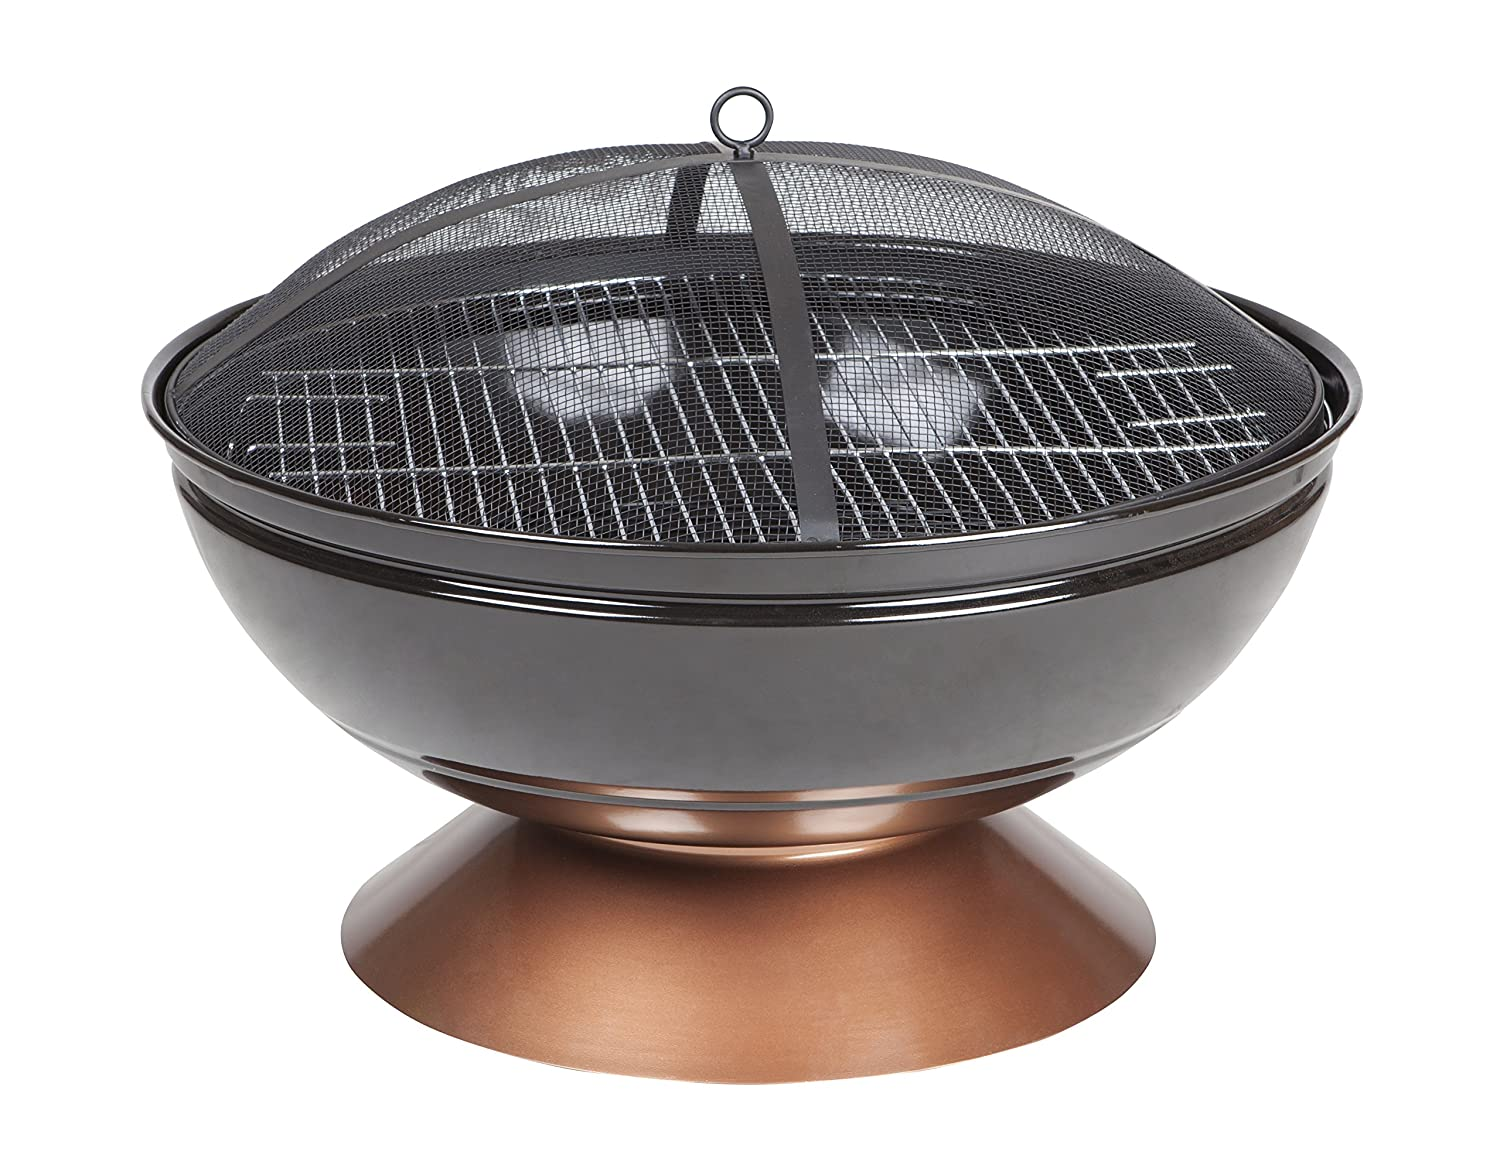 Fire Sense 62242 Degano Round Fire Pit, Black/Copper